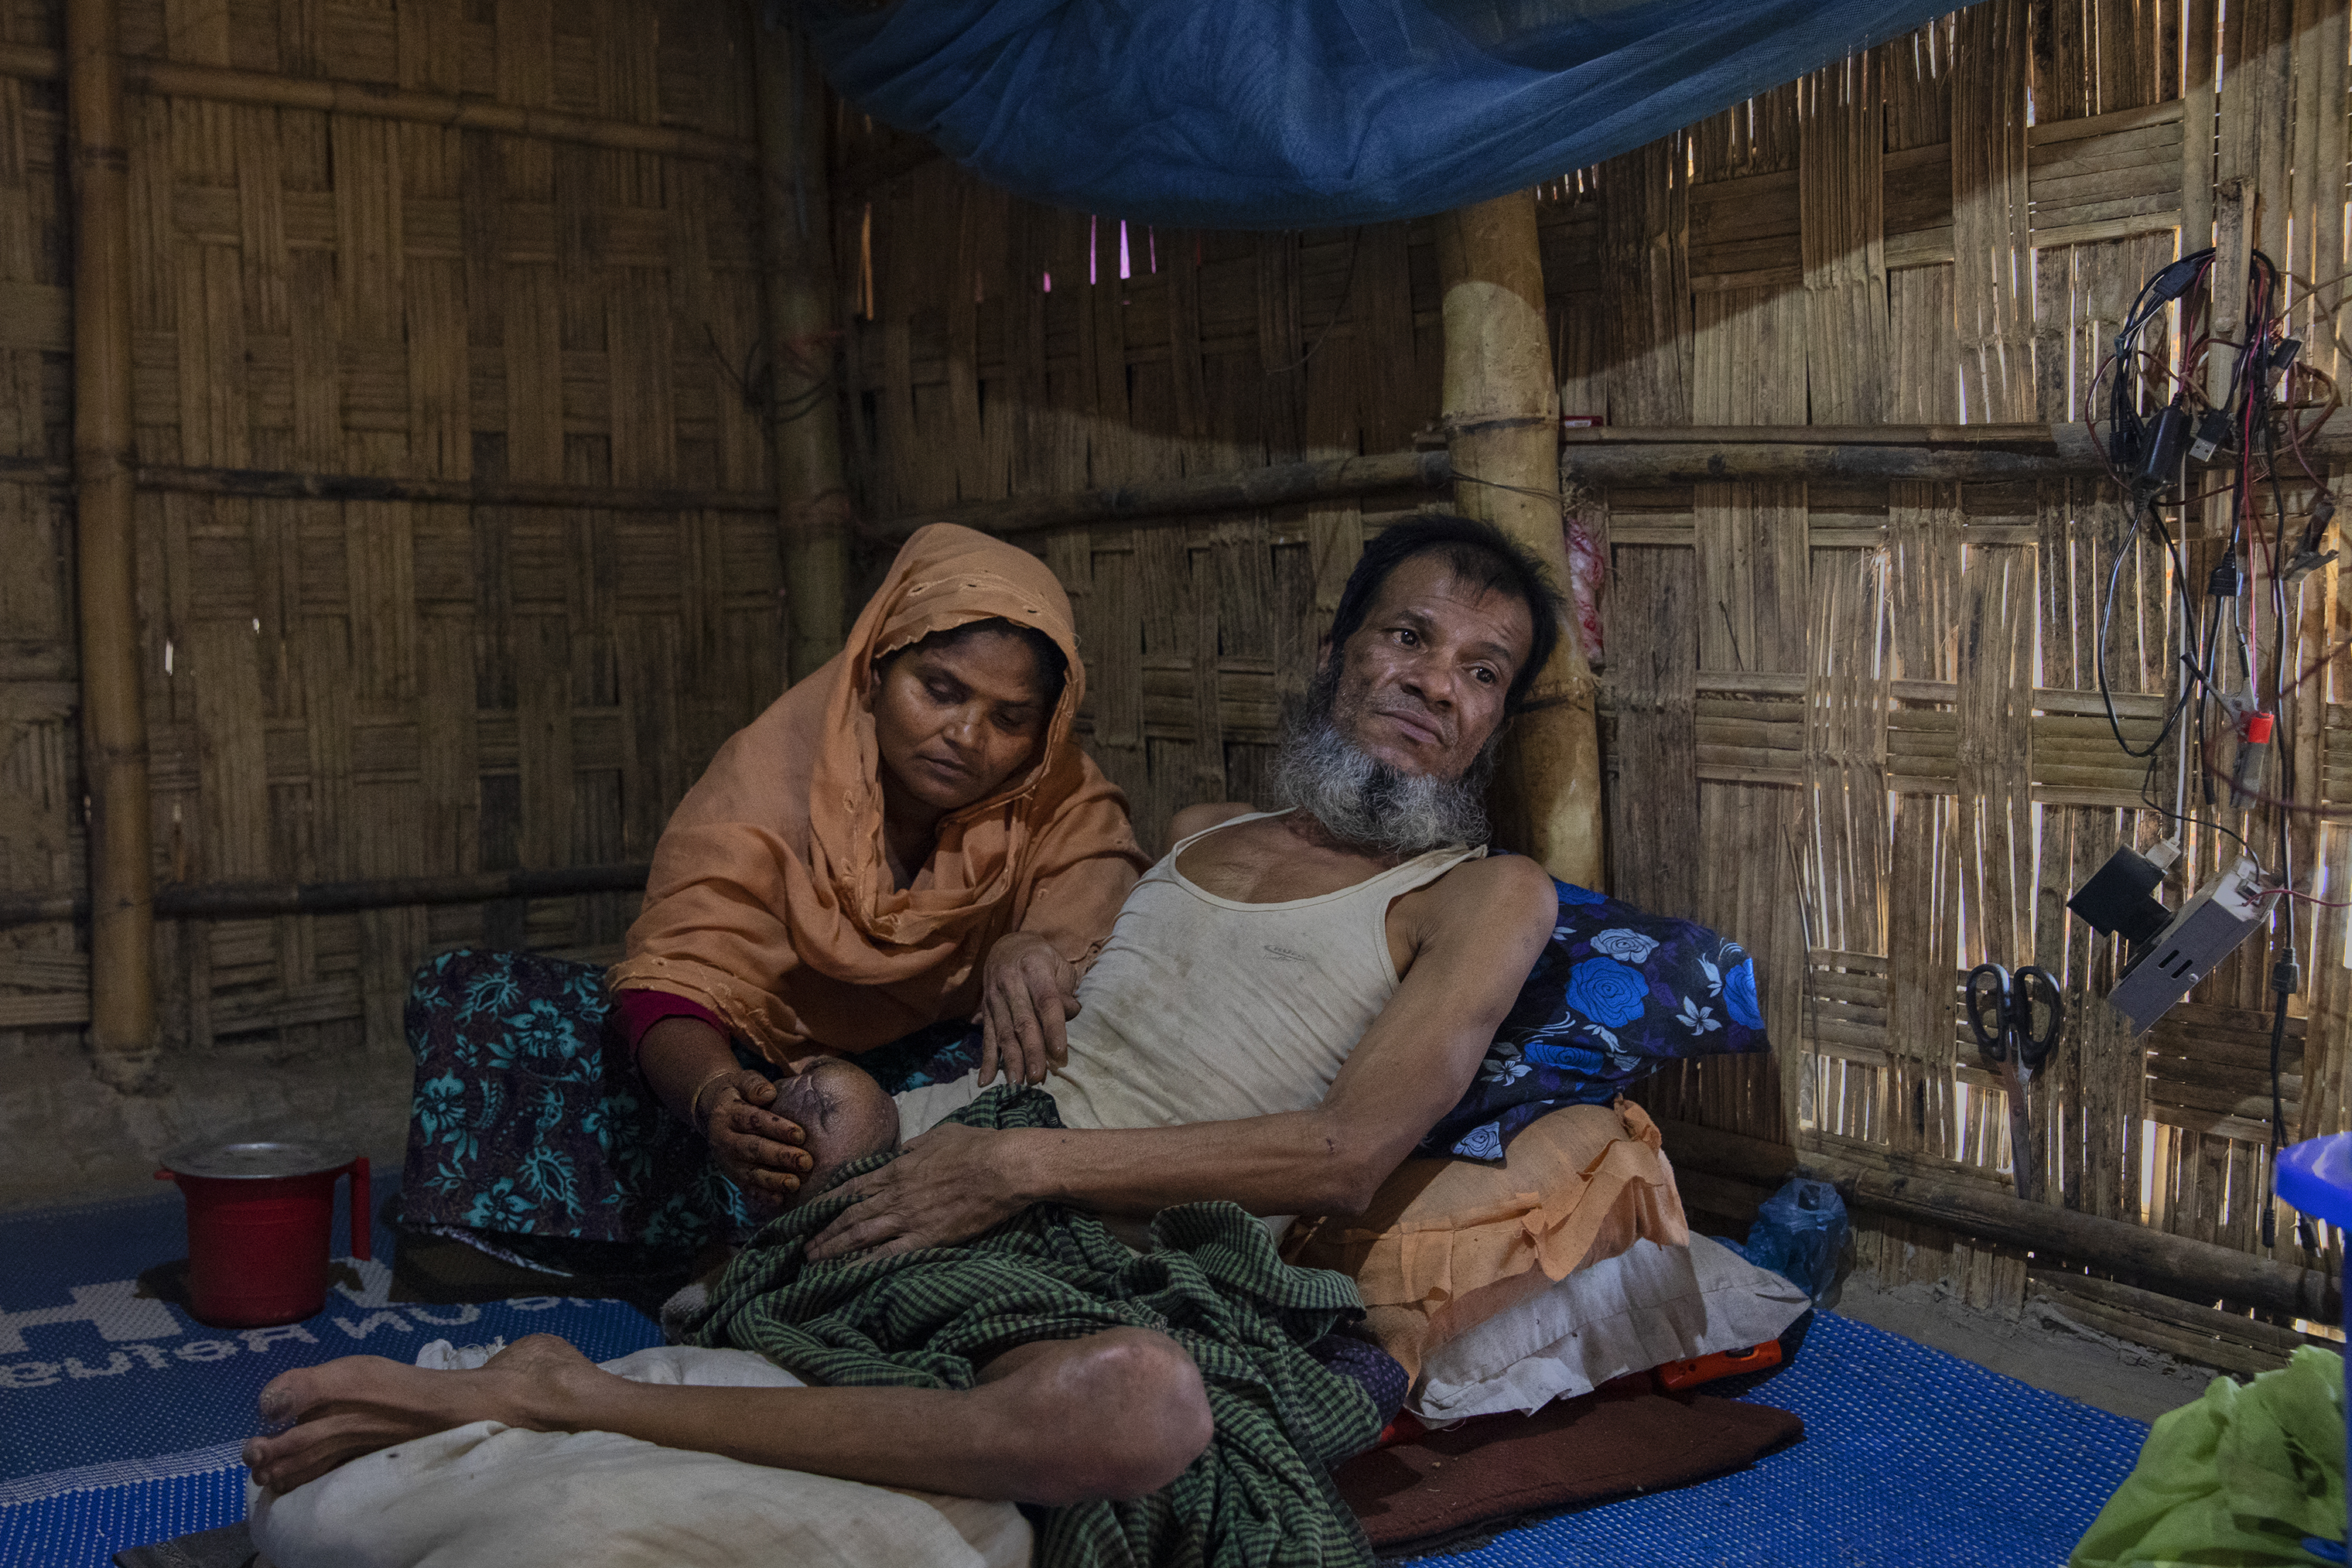 Inan Hossein, with his wife Halema Khatun, lost his leg to a gunshot from a government soldier in Myanmar.